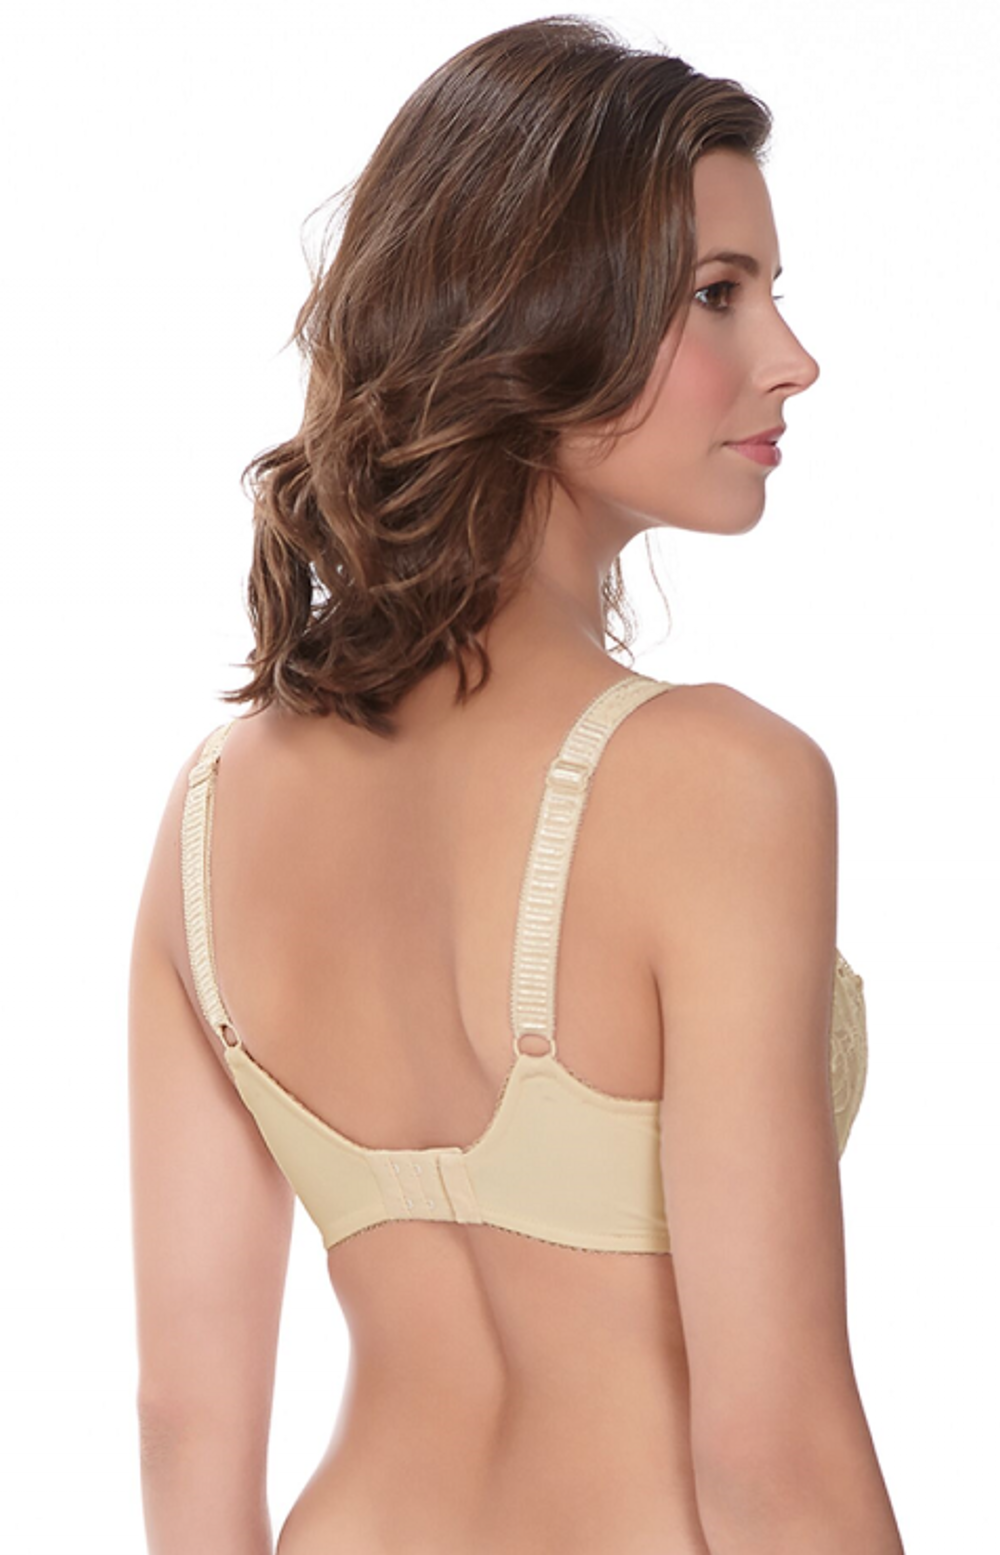 Fantasie-Jacqueline-Side-Support-Bra-9401-Full-Cup-Lace-Sexy-Lingerie